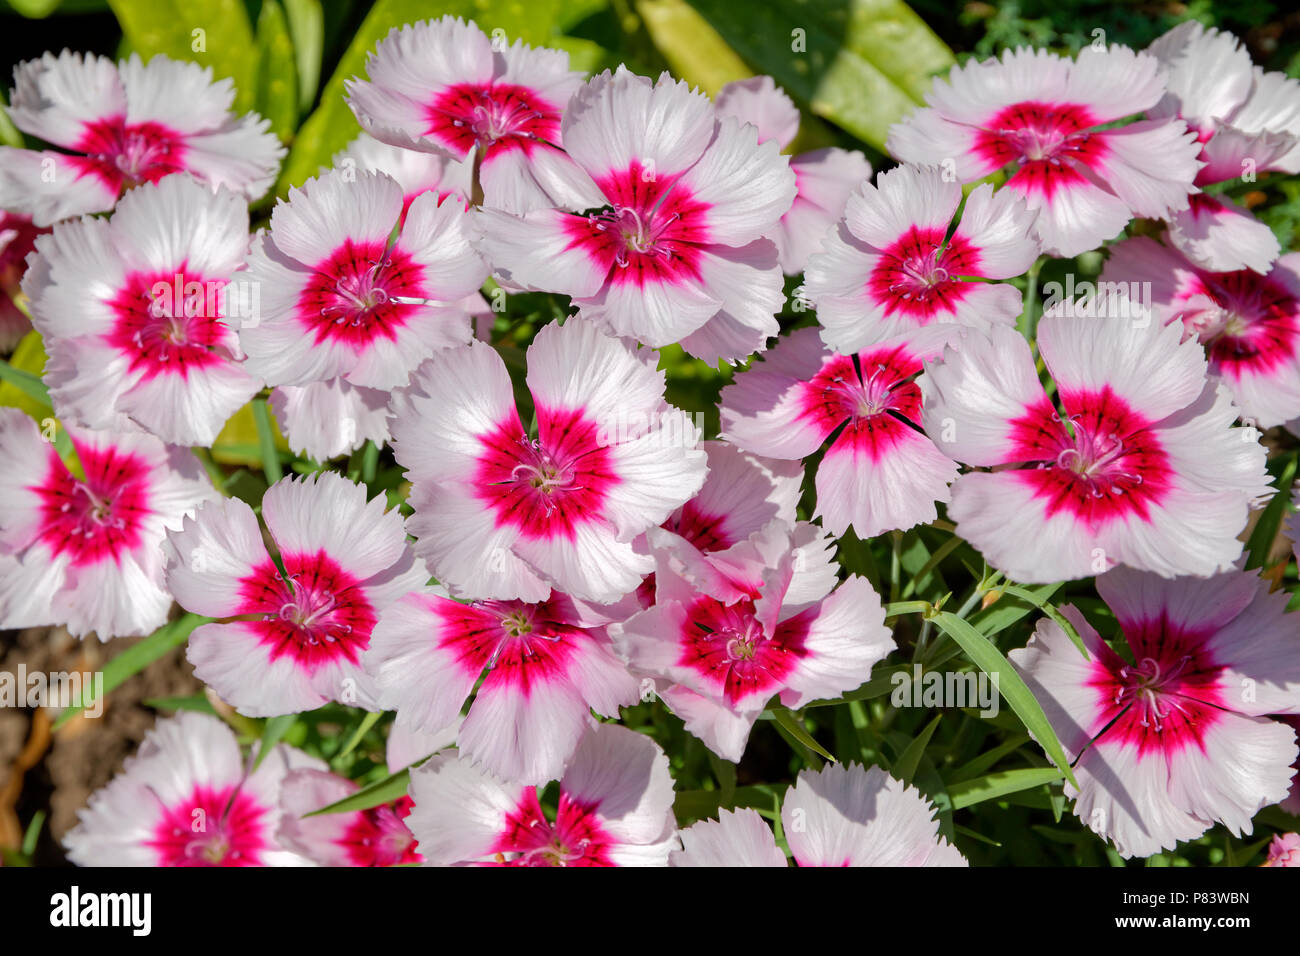 Pinks Dianthus Stock Photos Pinks Dianthus Stock Images Alamy